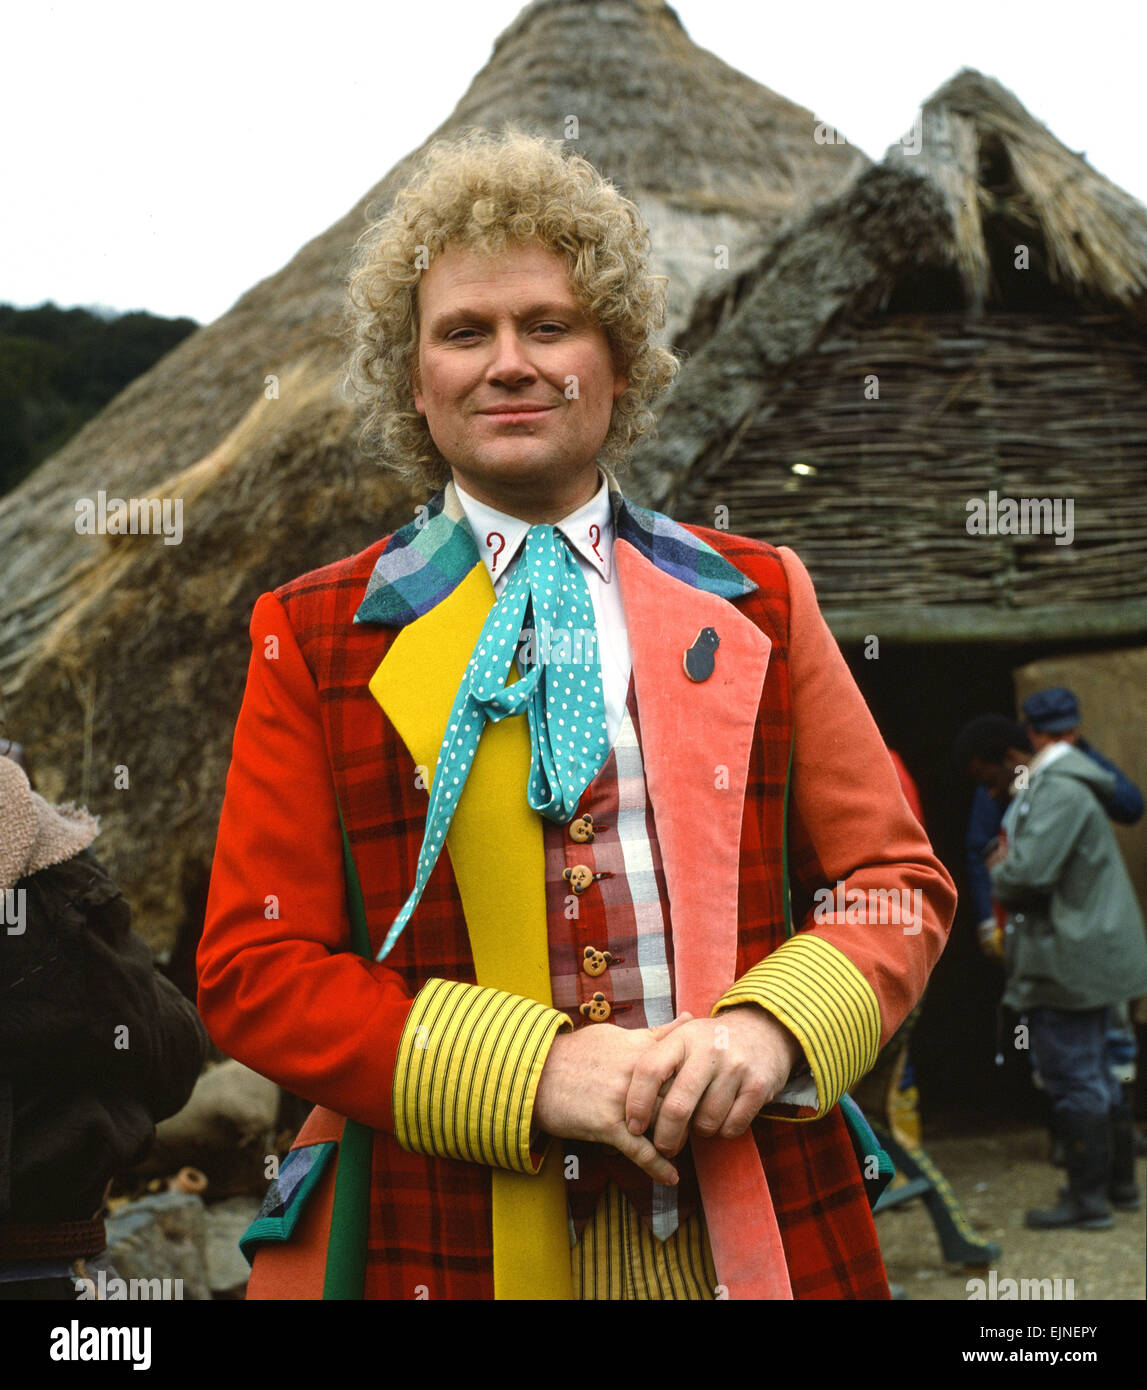 Actor Colin Baker, who plays Doctor Who in the BBC science fiction programme, photographed during filming at Butser Stock Photo